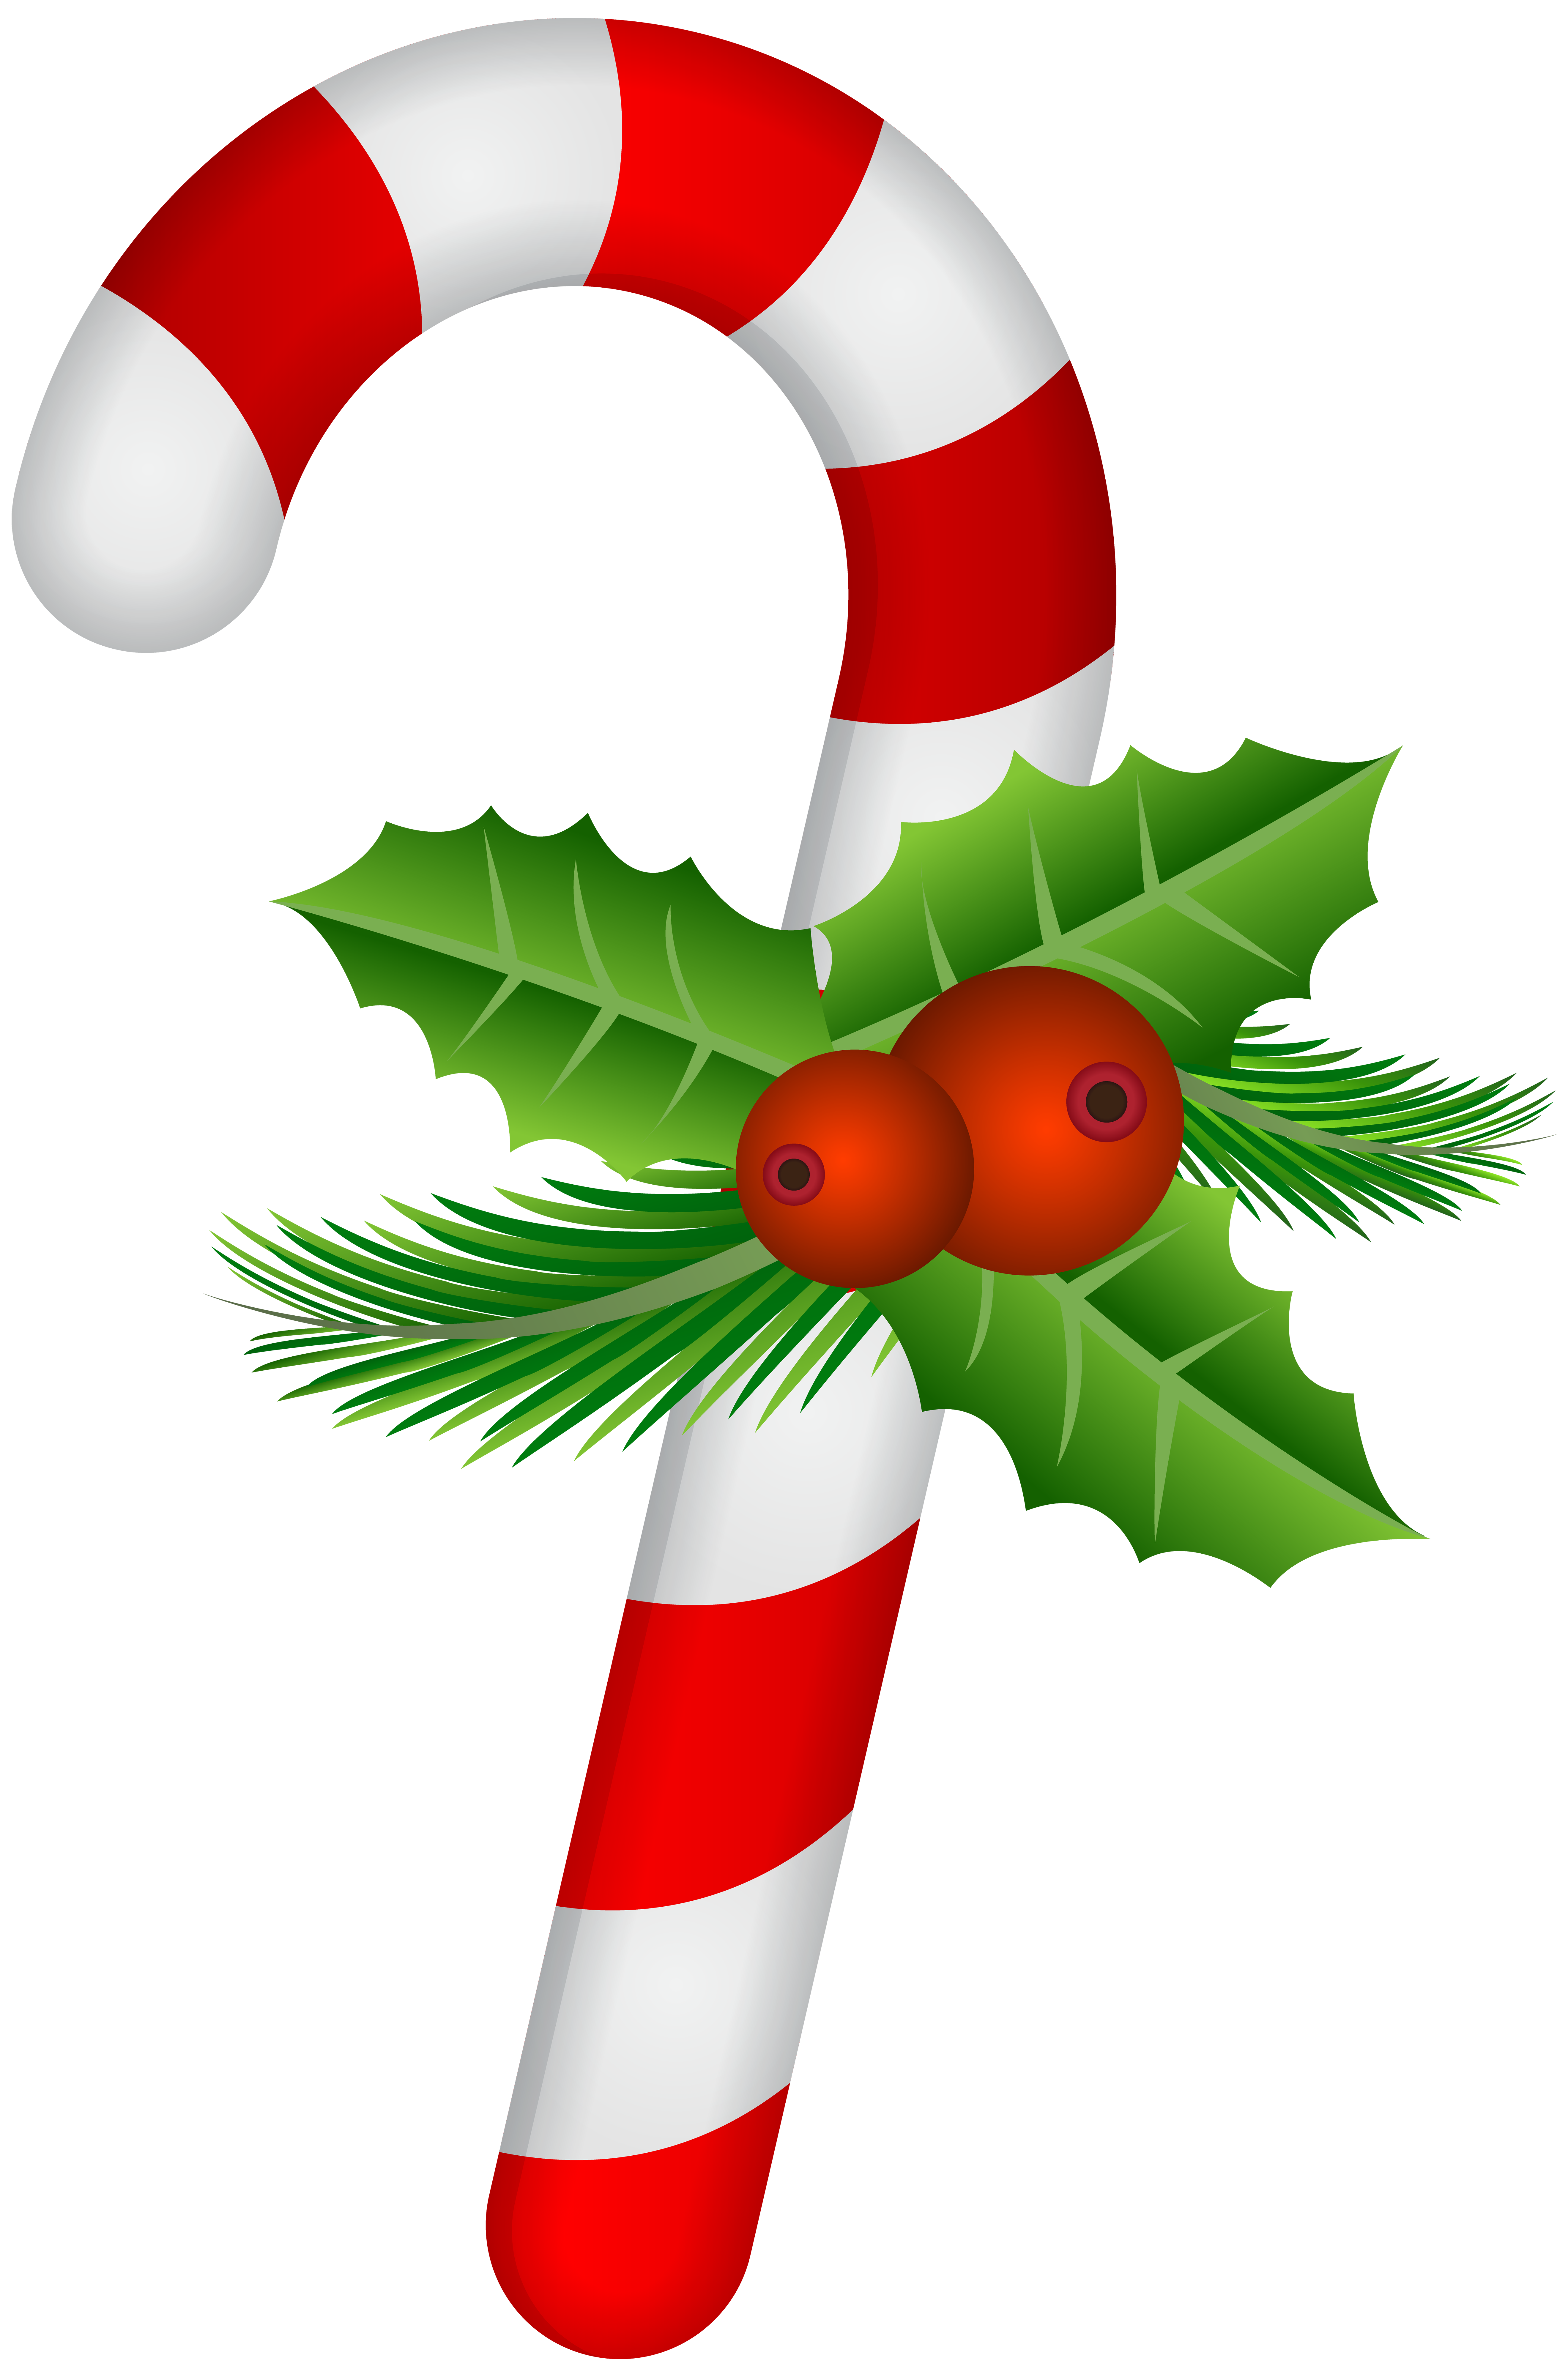 Candy cane with holly transparent png clip art imagenes for Christmas images paintings